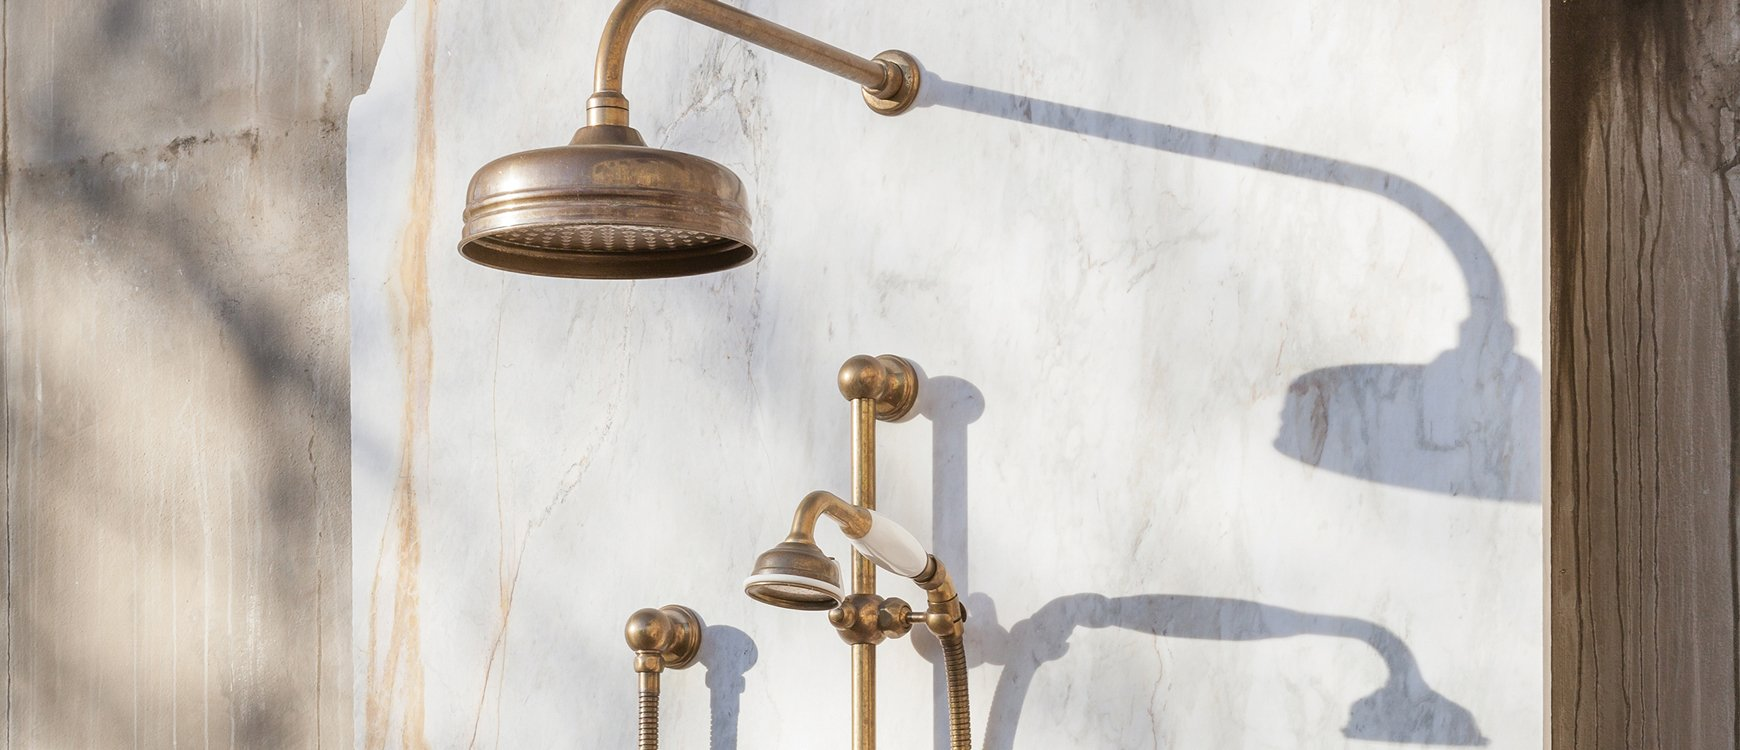 rowe aged brass faucets fresh kitchens and humphrey taps faucet of perrin munson